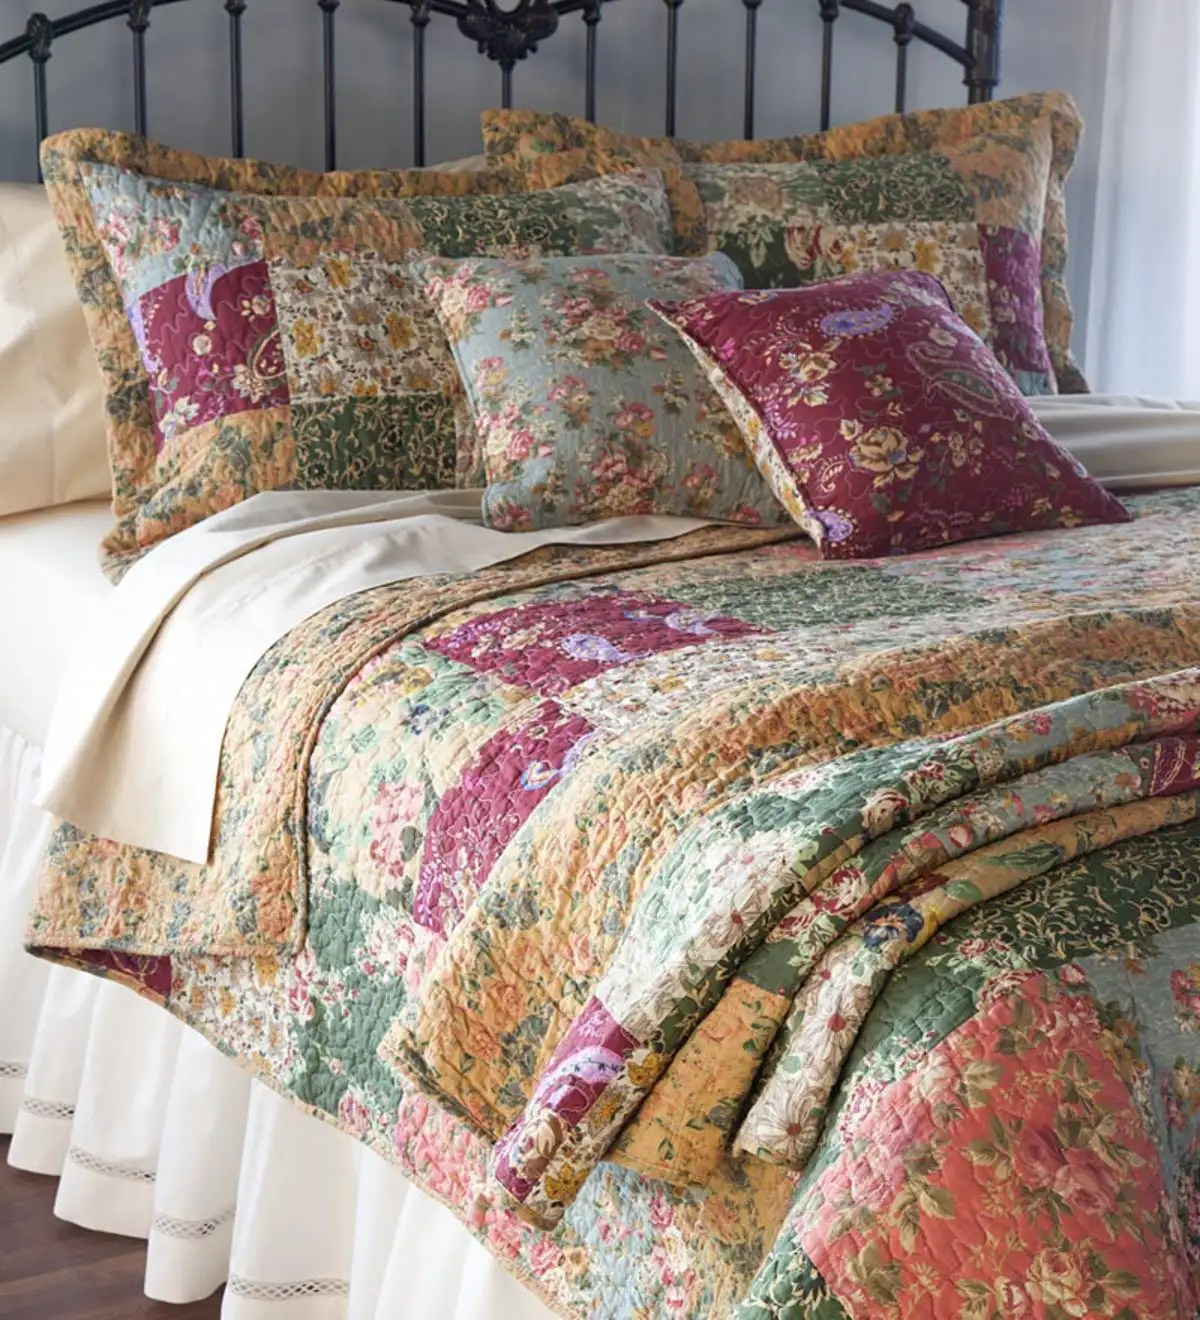 Quilt Sets Cotton Floral Paisley Patchwork Quilt Sets Throw And Pillows